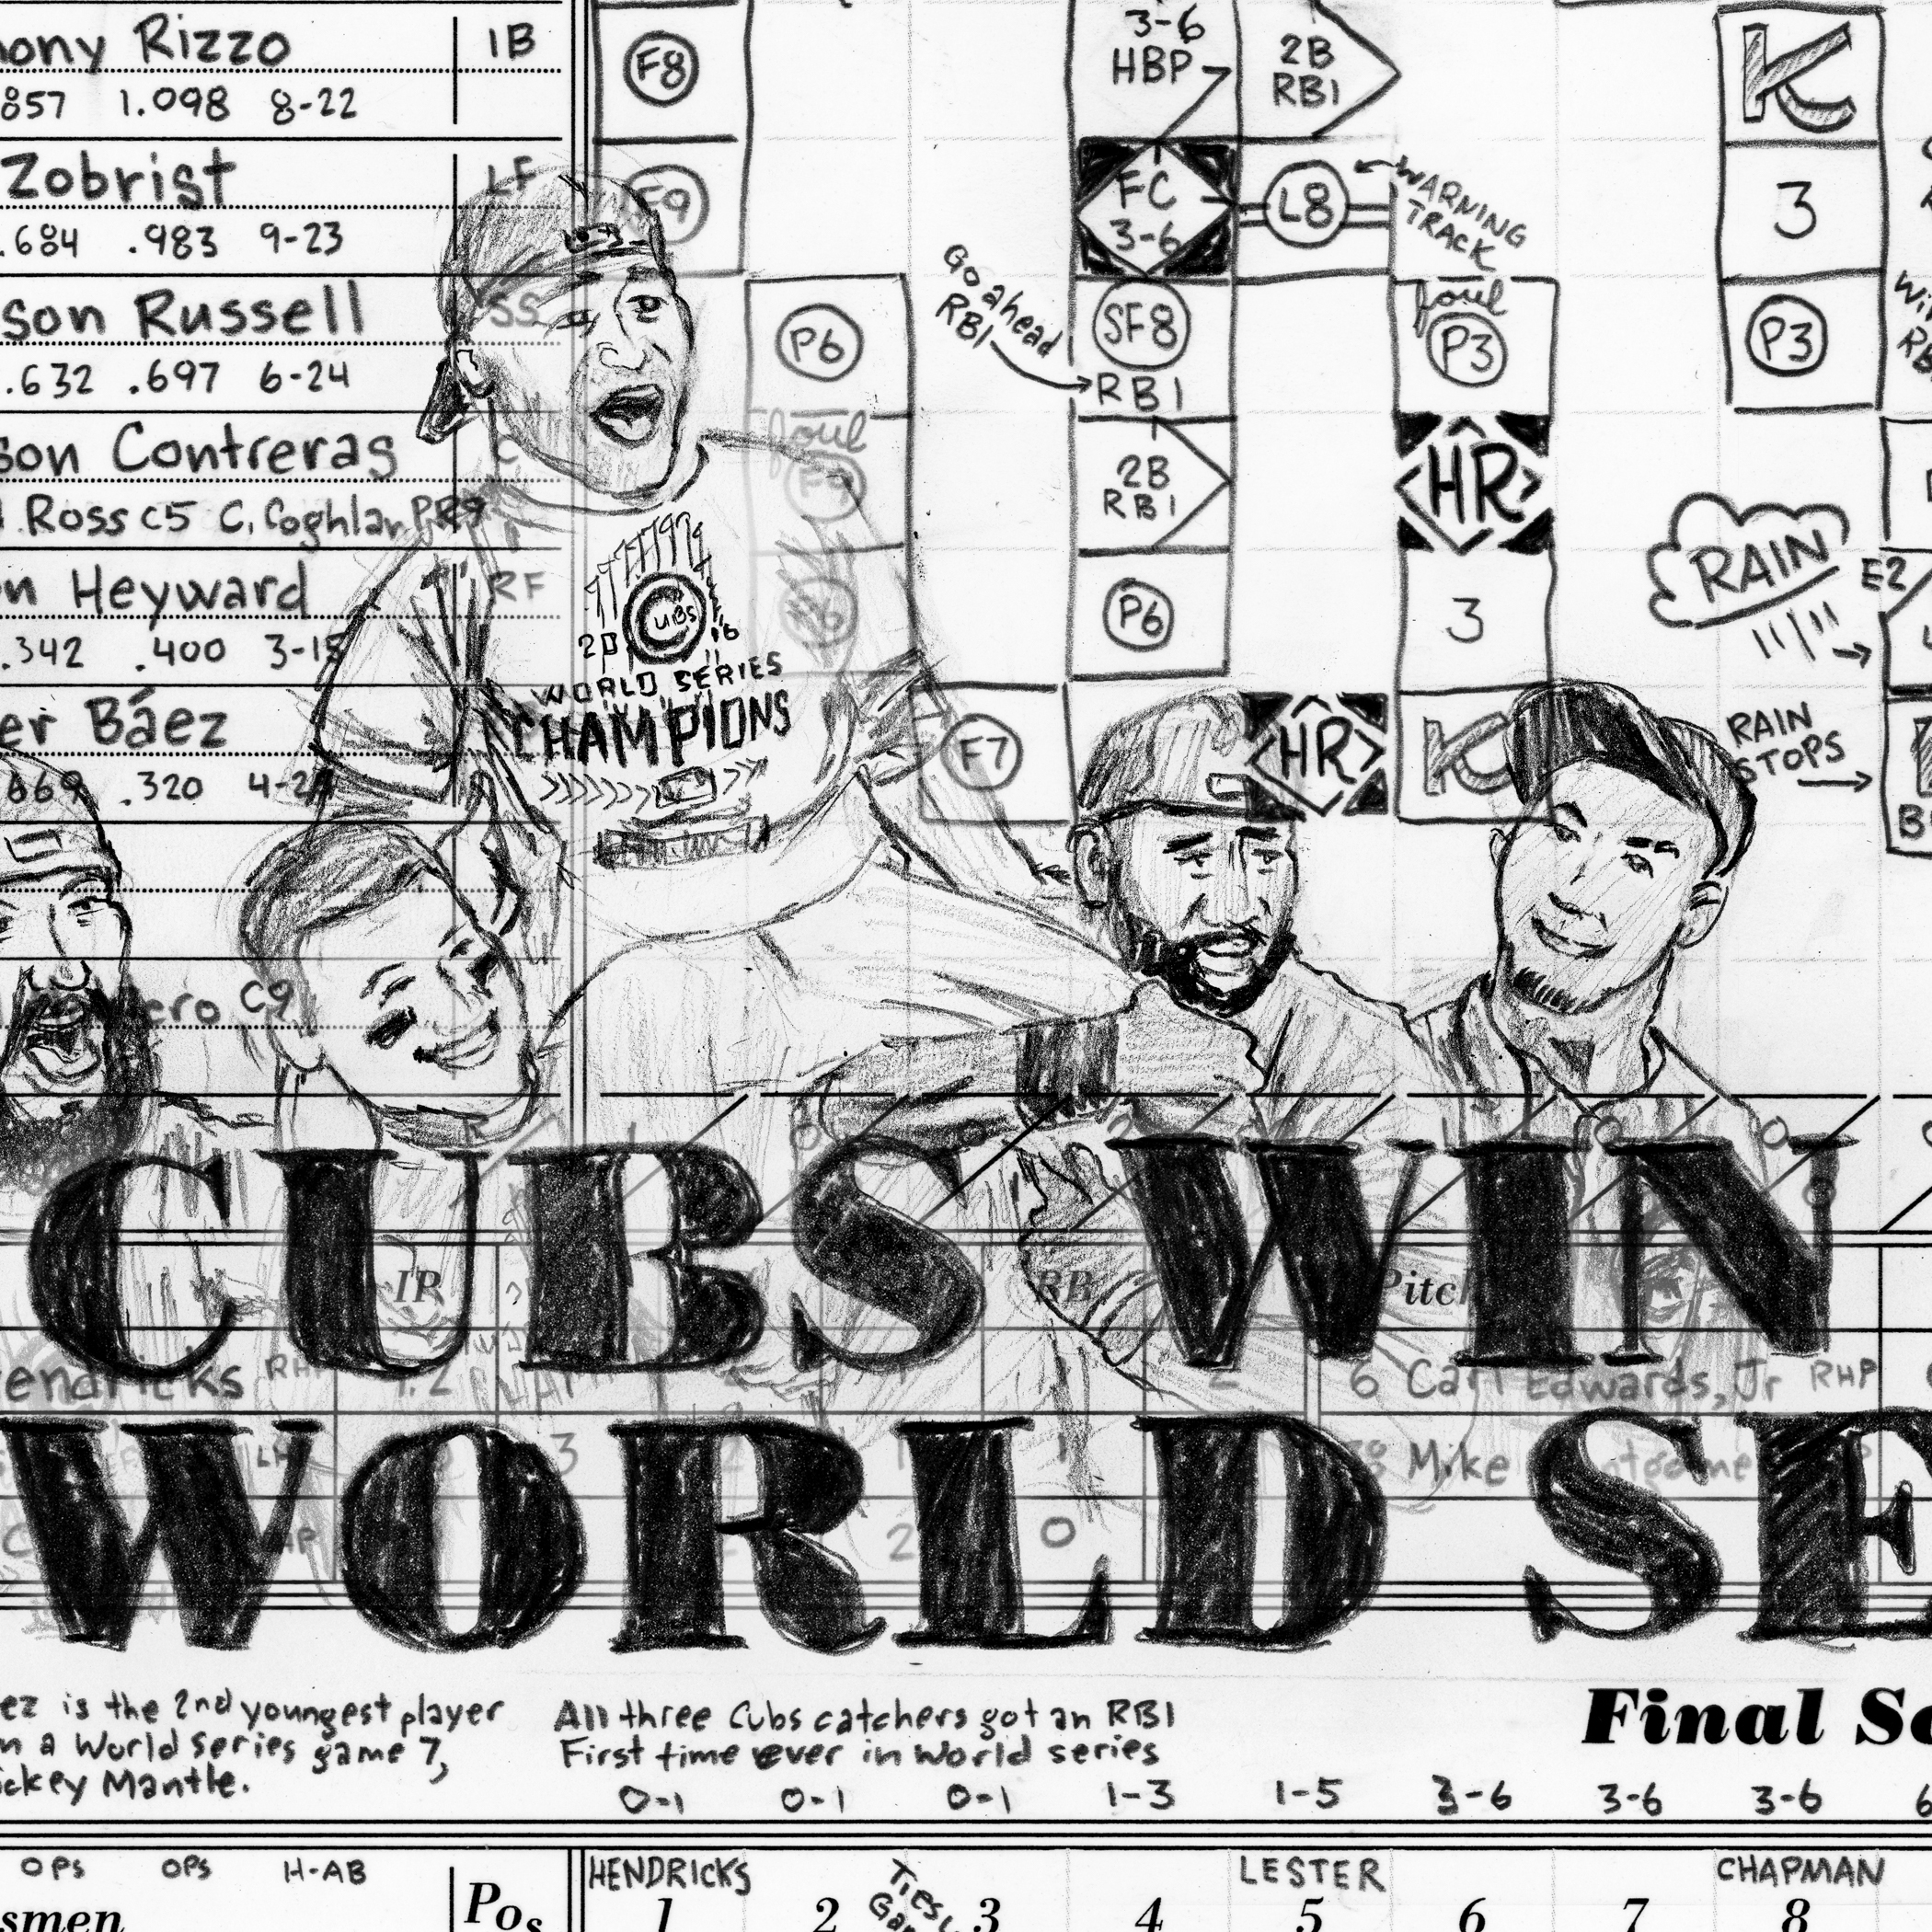 Game 7 scorecard for 2016 World Series